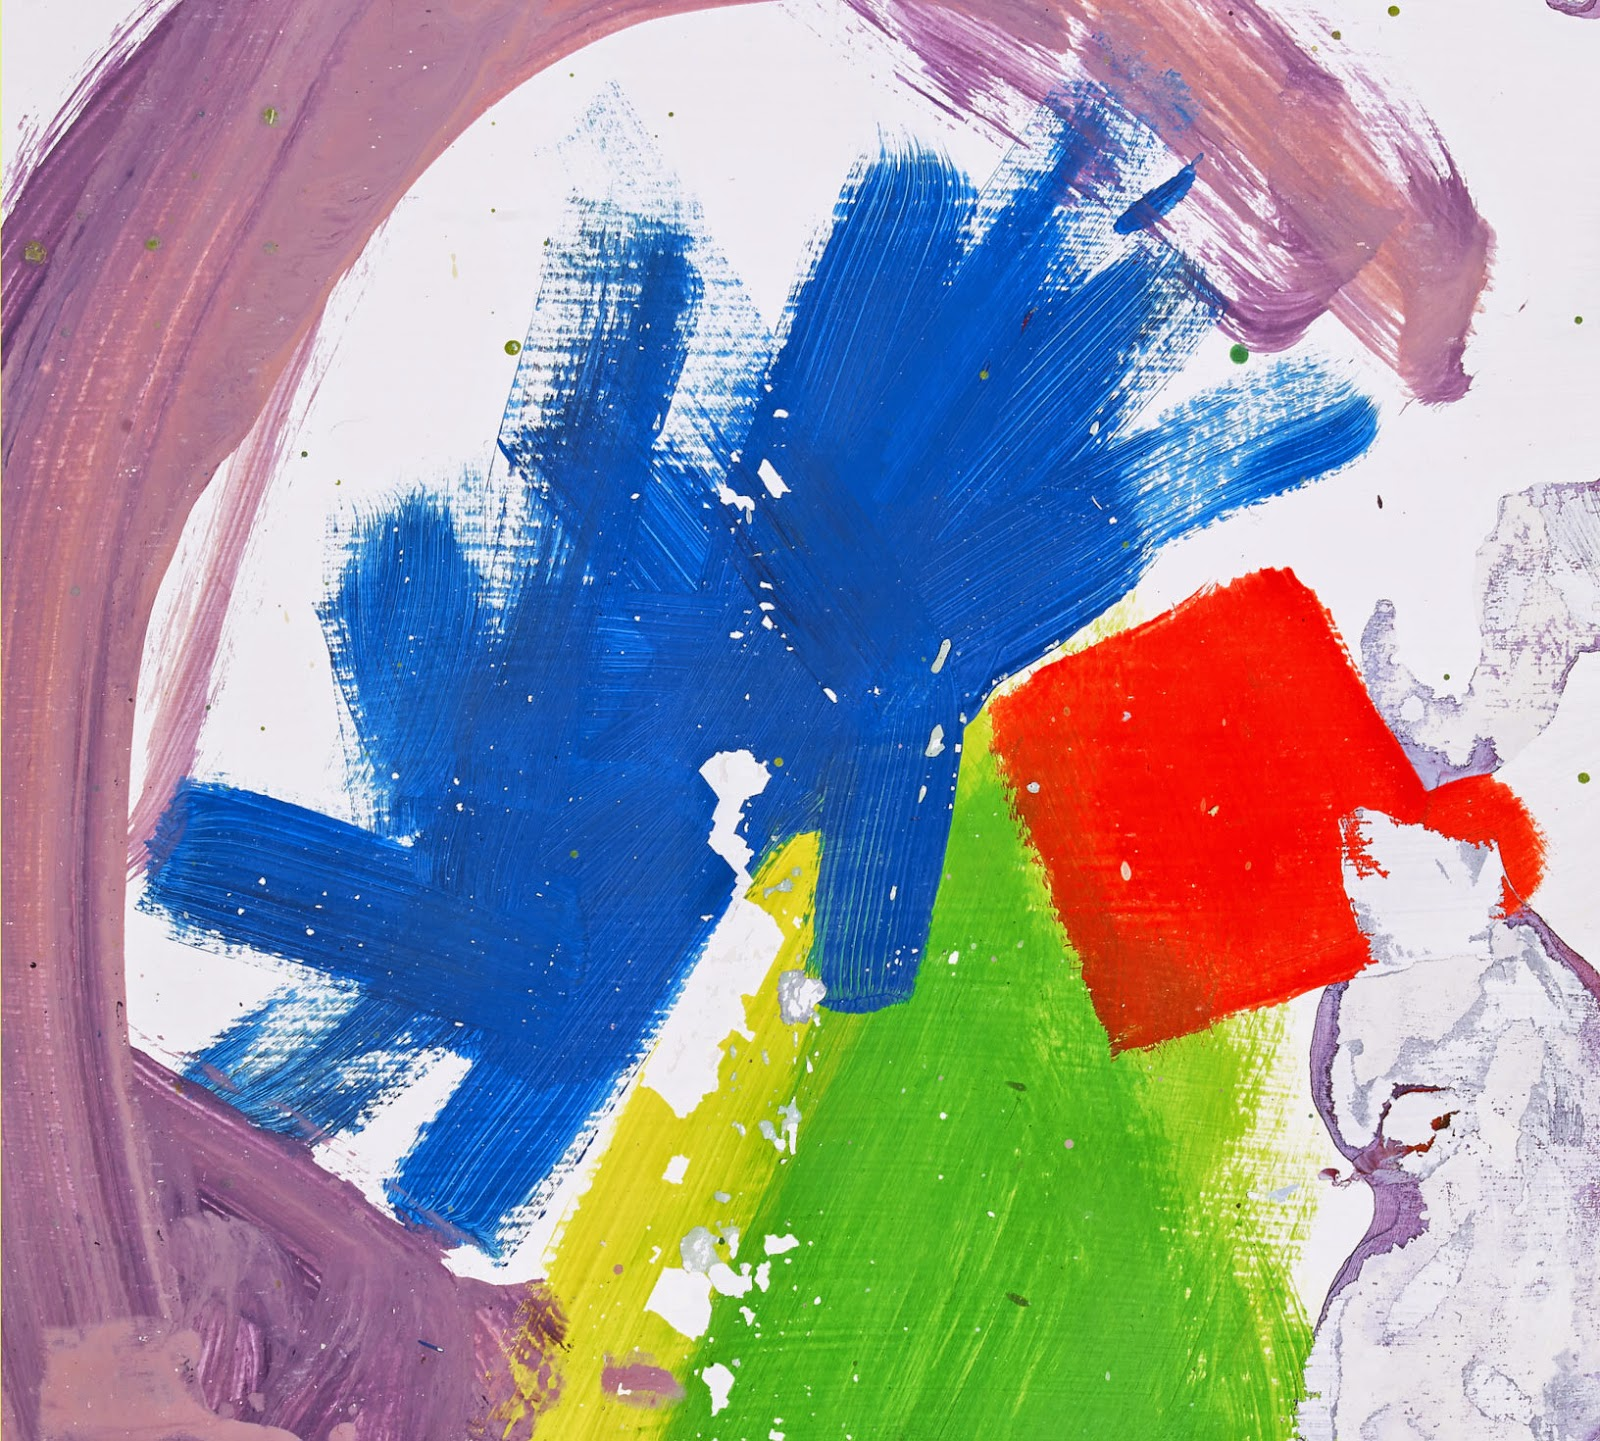 http://www.d4am.net/2014/09/alt-j-this-is-all-yours.html